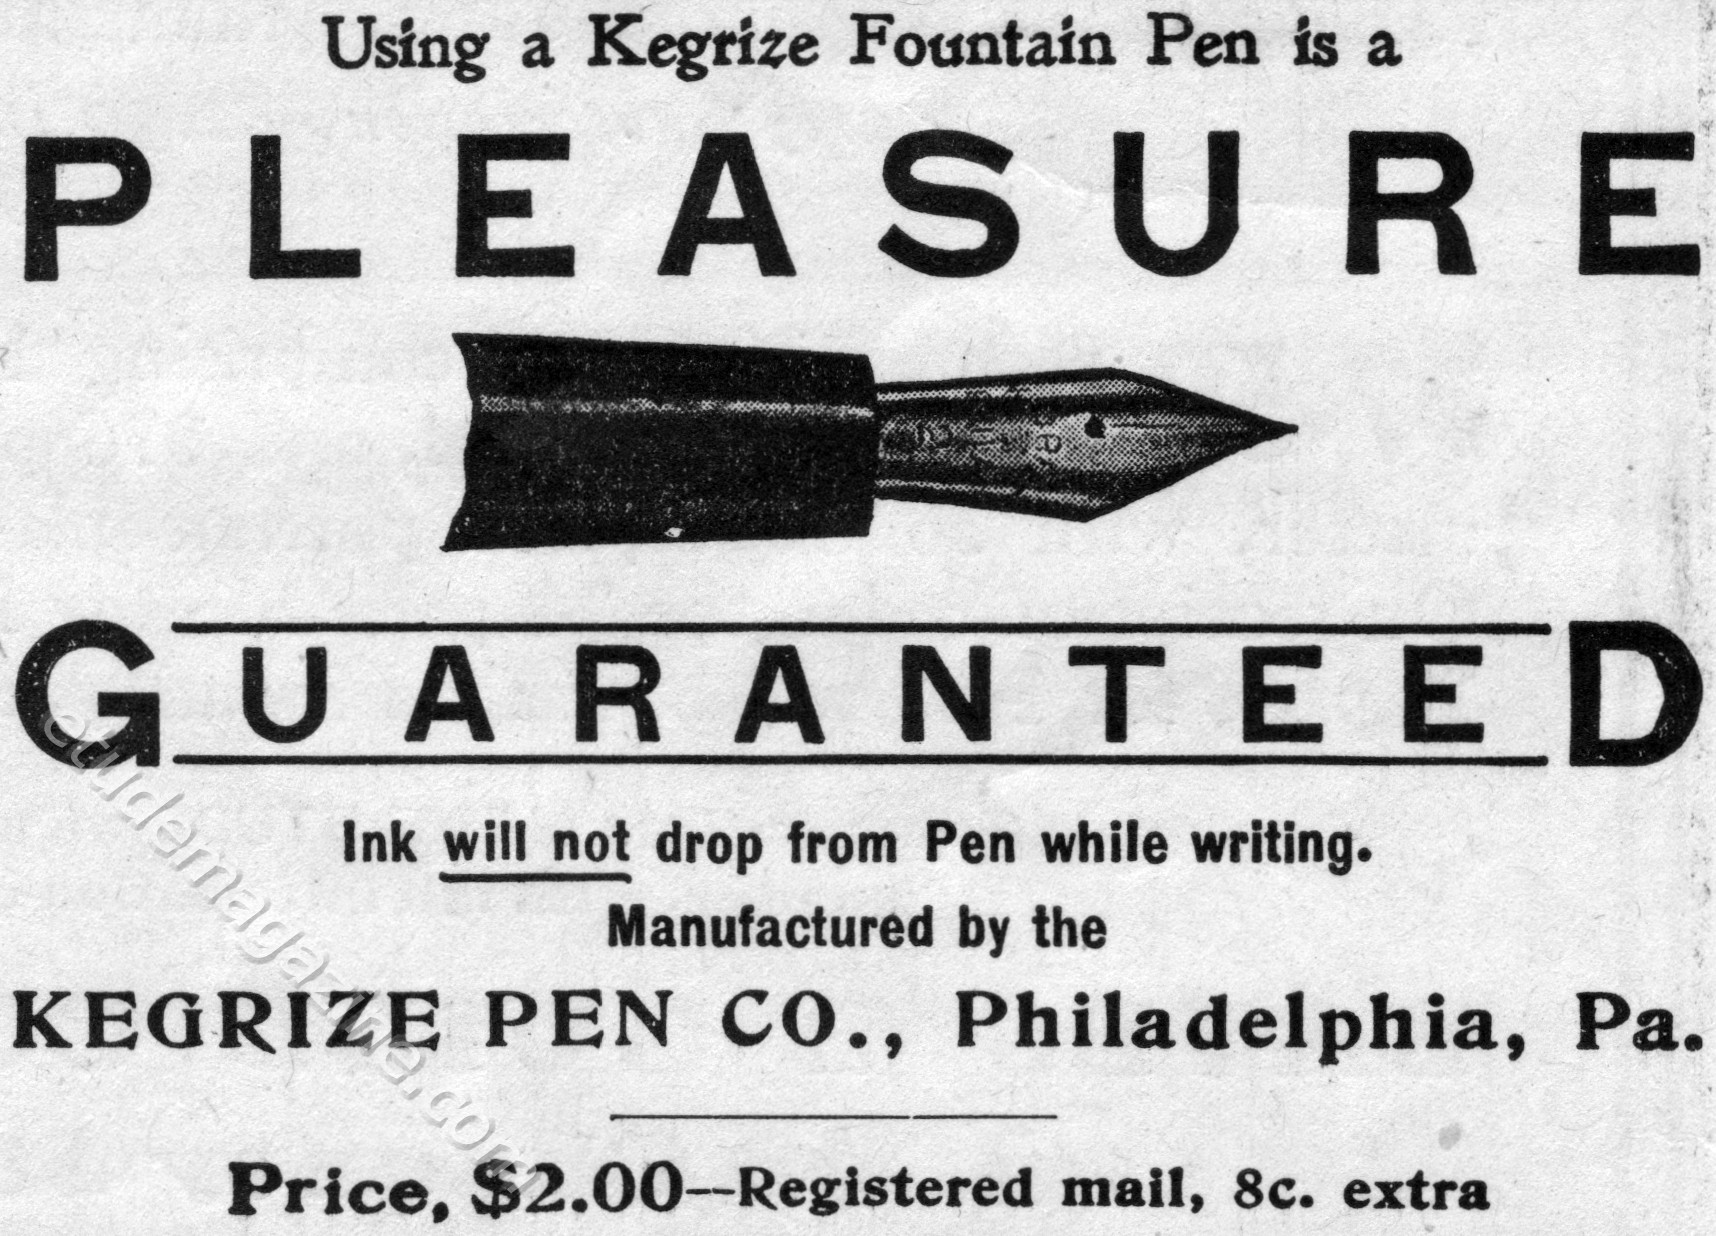 Kegrize Fountain Pen